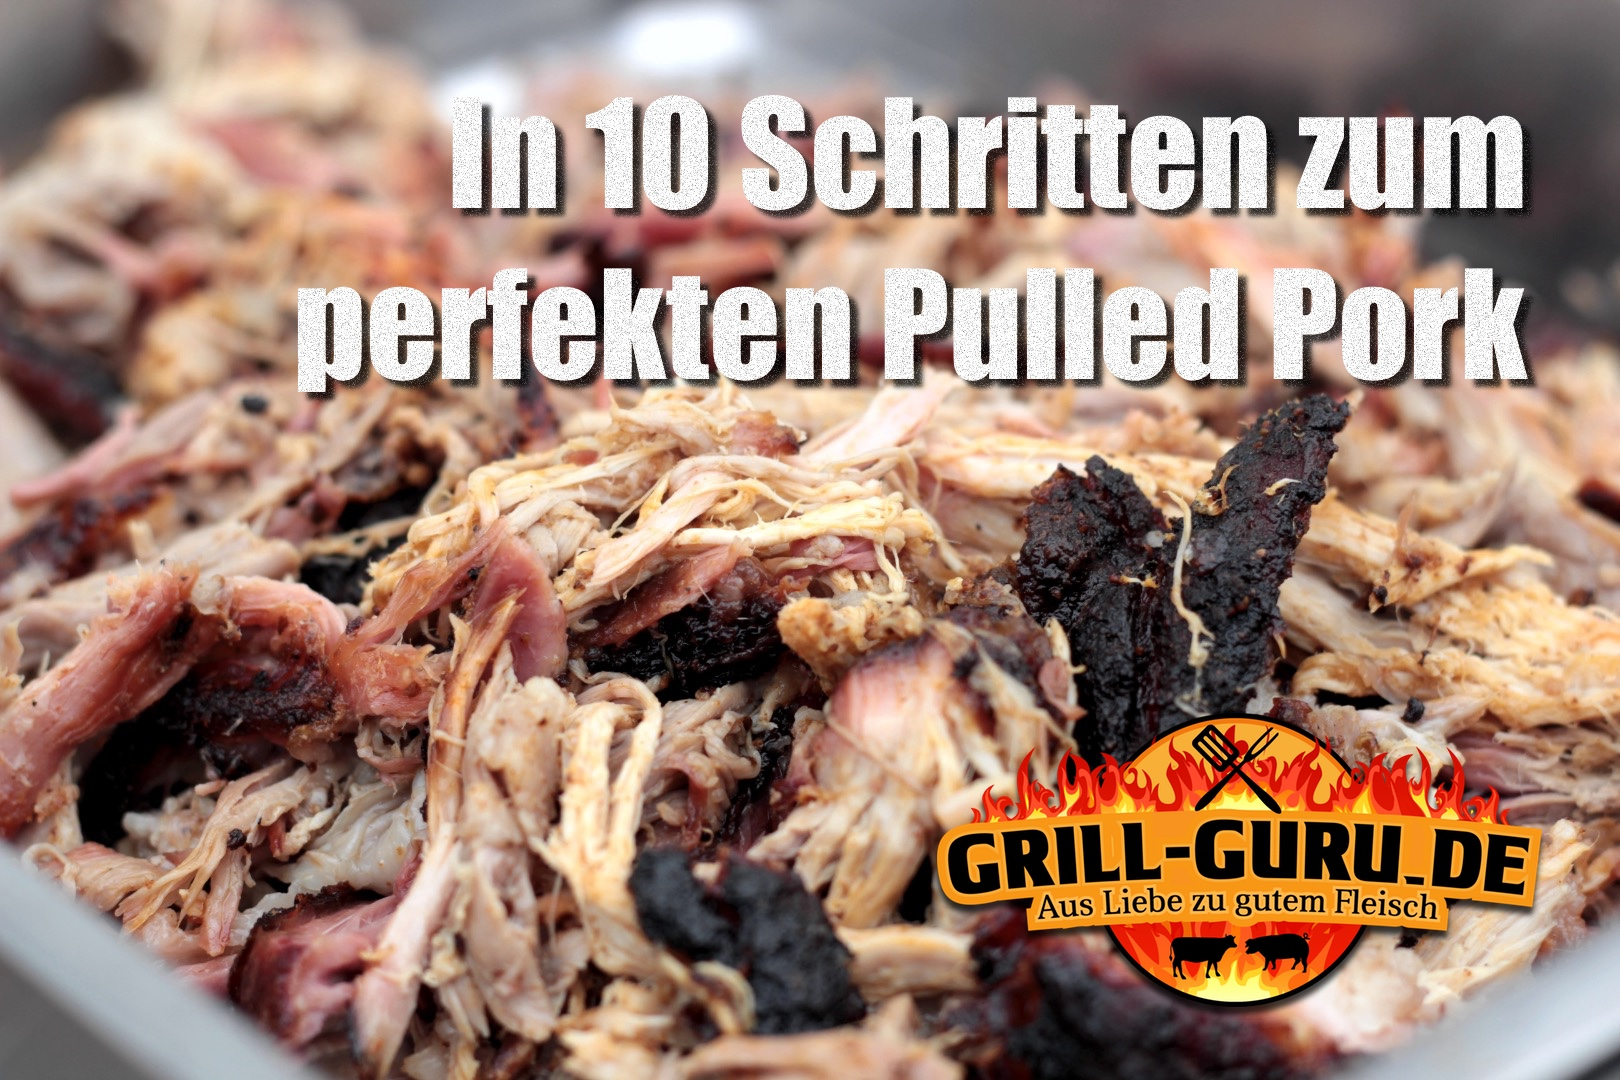 Pulled Pork Gasgrill Outdoorchef : Schritte zum perfekten pulled pork grill guru